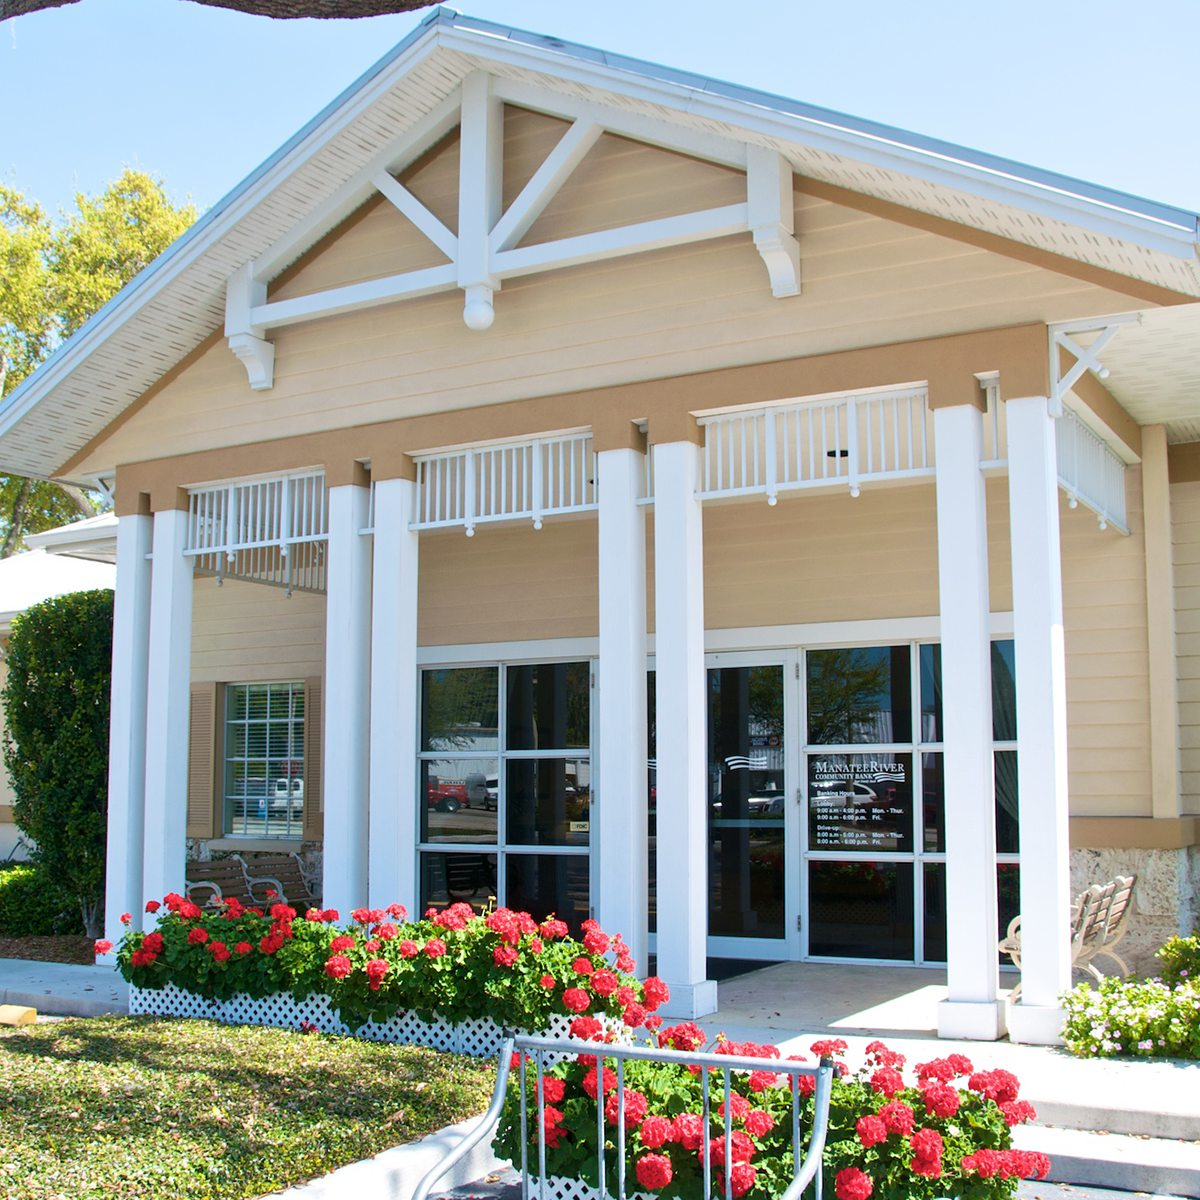 Manatee River Community Bank